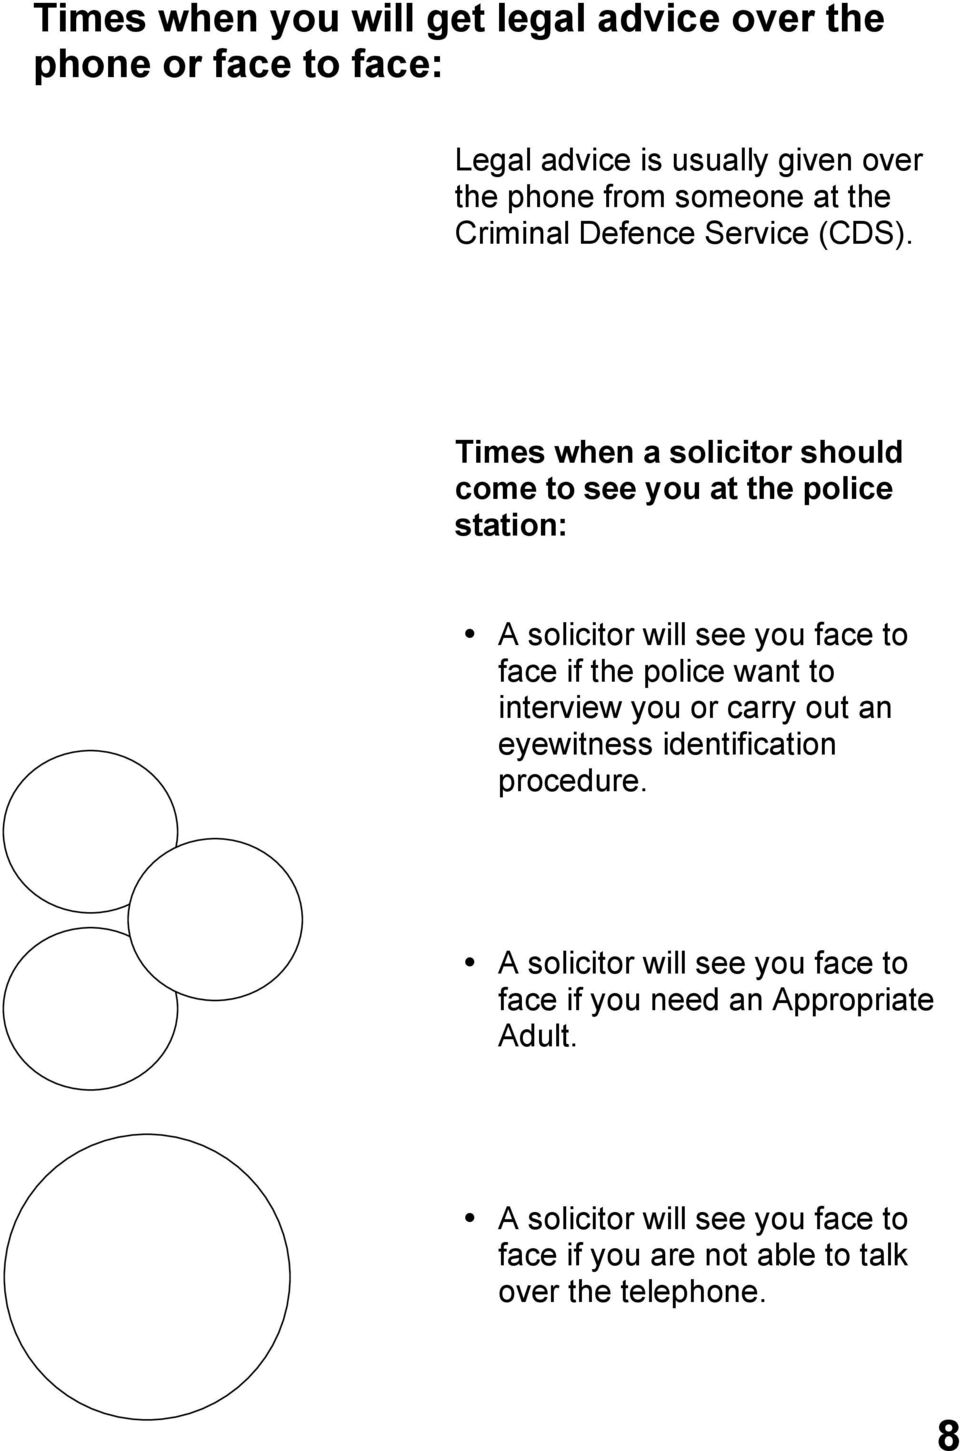 Times when a solicitor should come to see you at the police station: A solicitor will see you face to face if the police want to